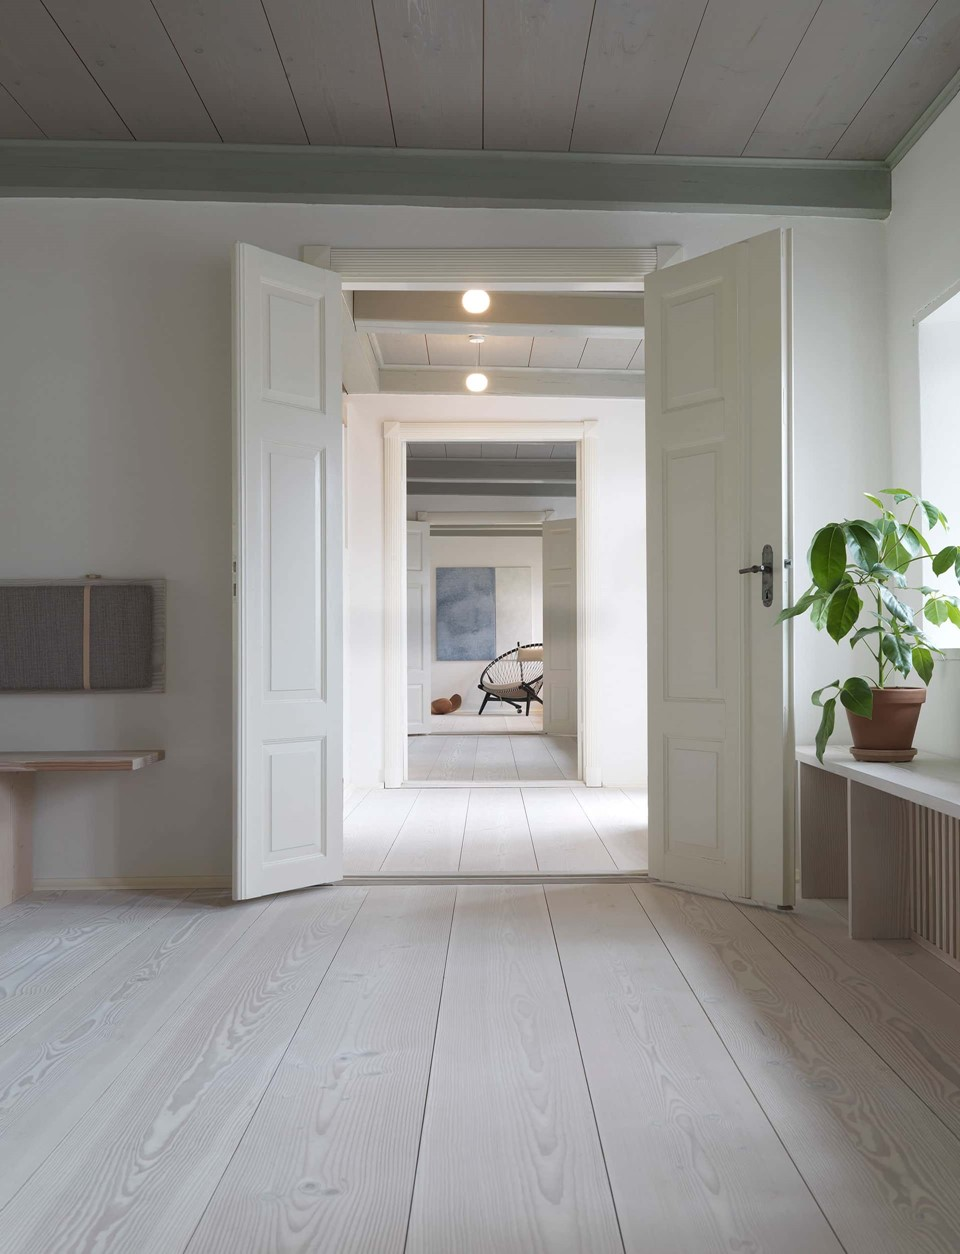 douglas-fir-floor_lye-white-soap-underfloor-heating_hallway_dinesen-country-home.jpg